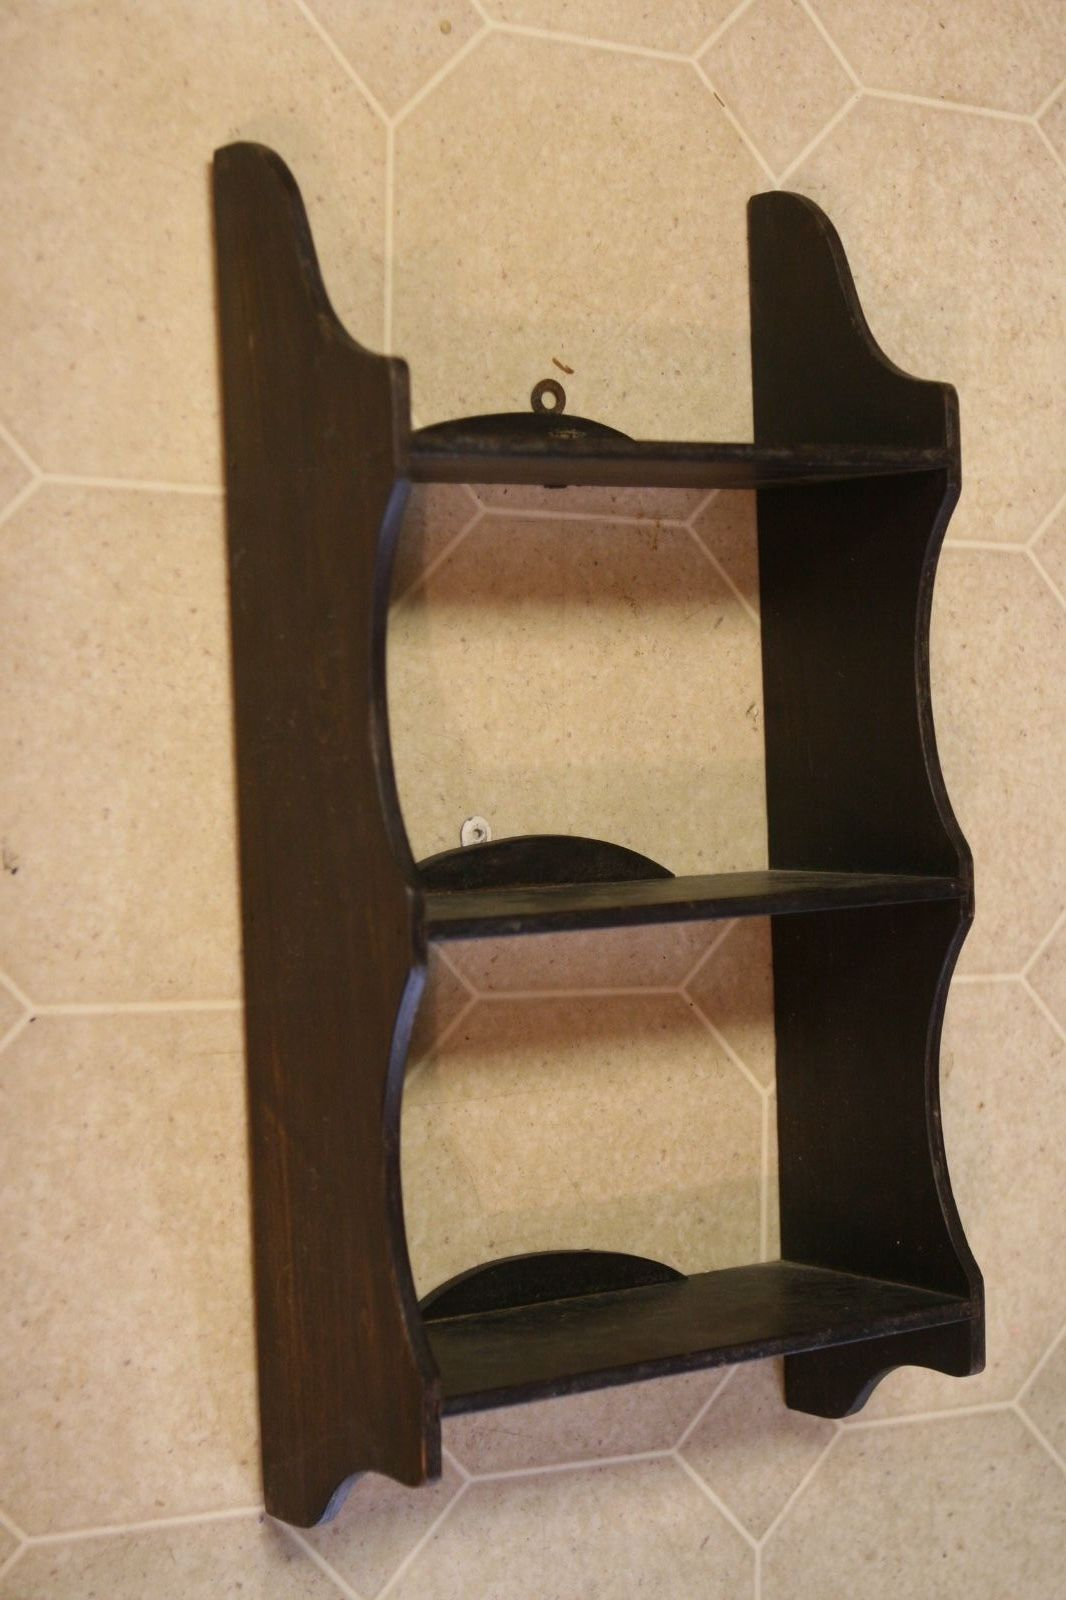 vintage brown pine hanging 3 shelf nicknack shelves wall shelf